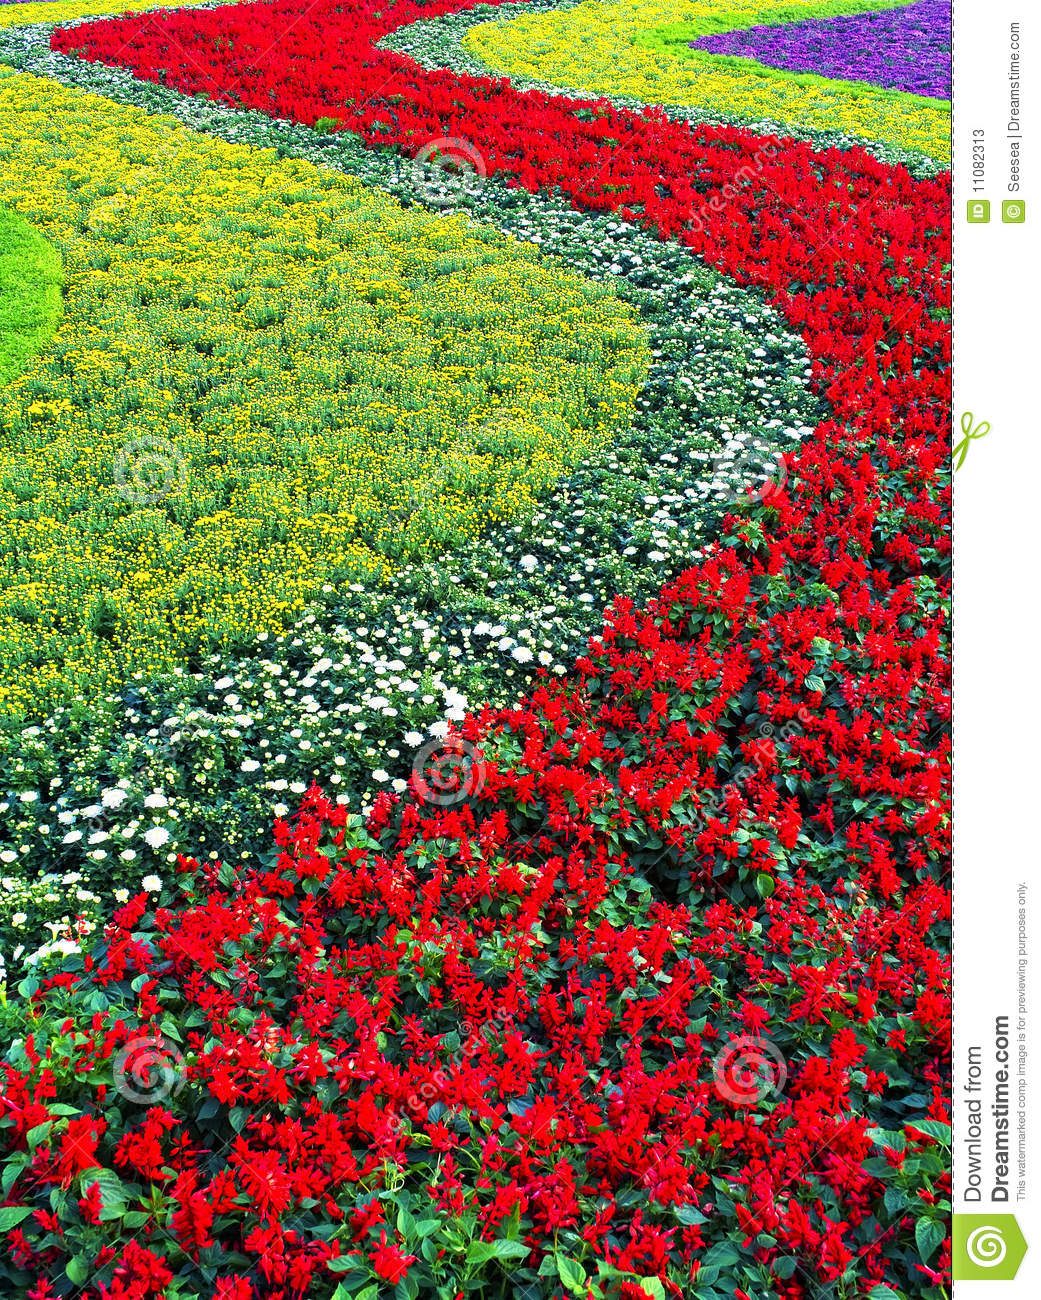 Flower Bed Stock Photos - Image: 11082313